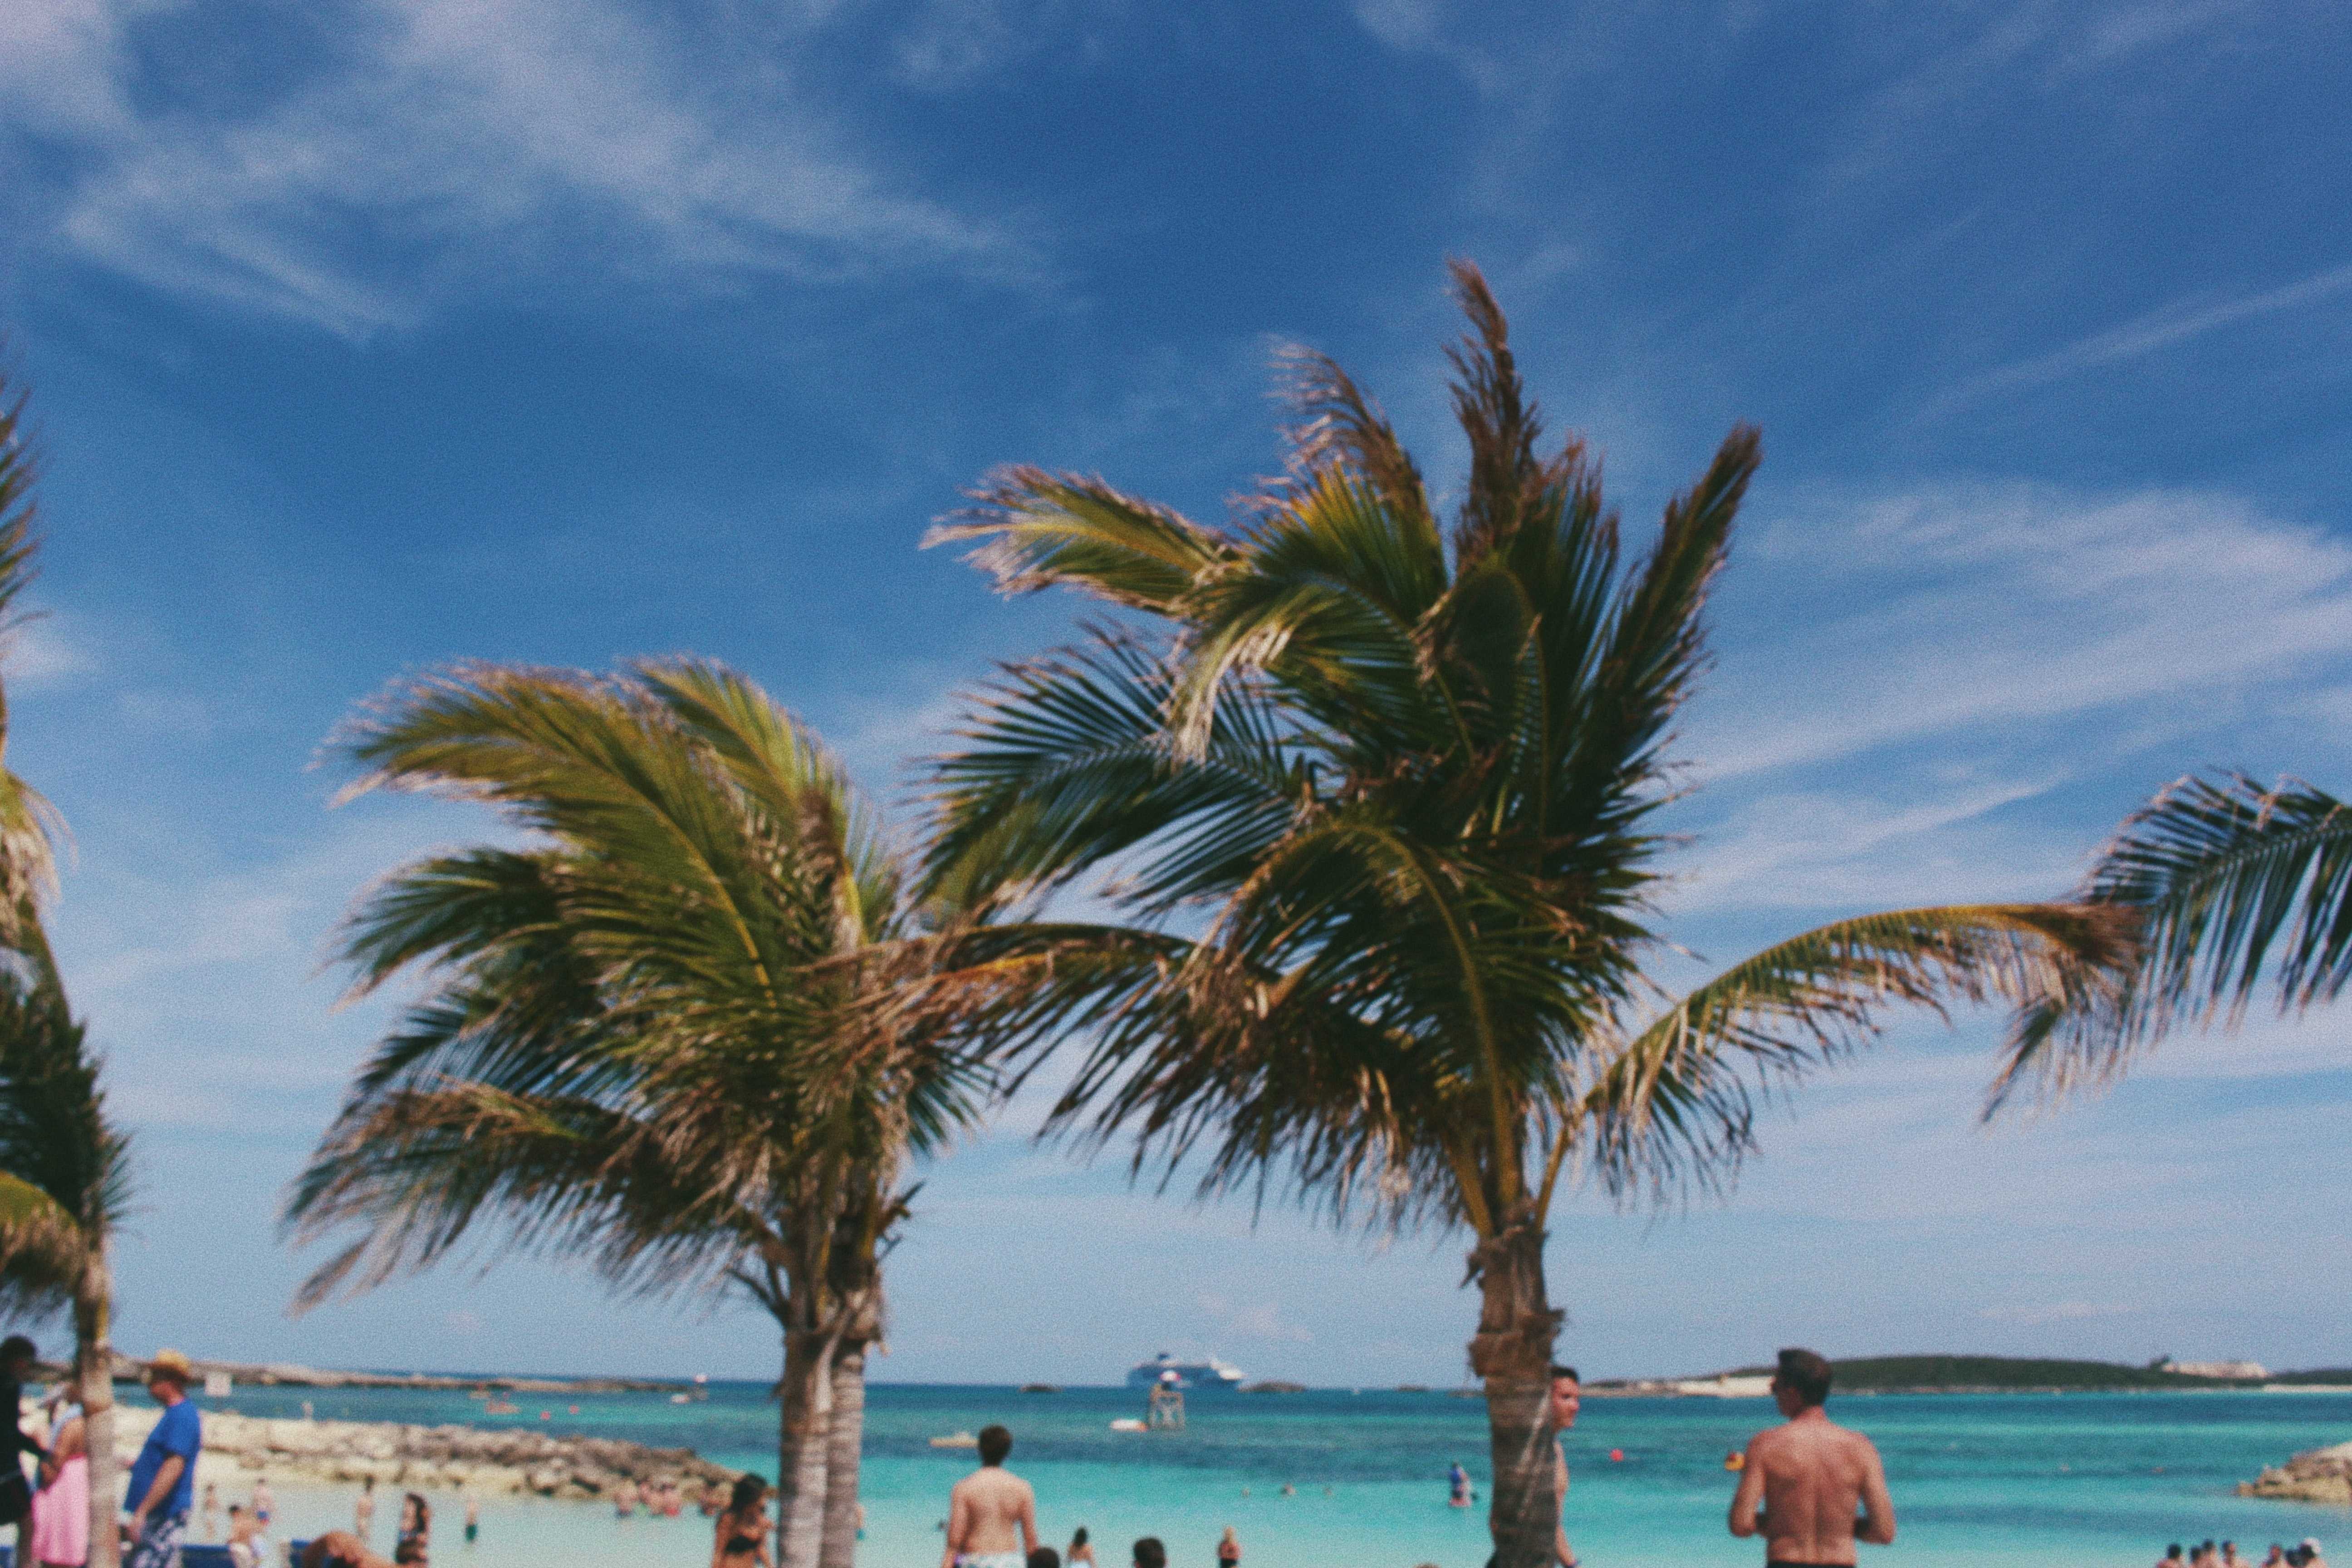 Palm trees swaying in the breeze over a crowded beach